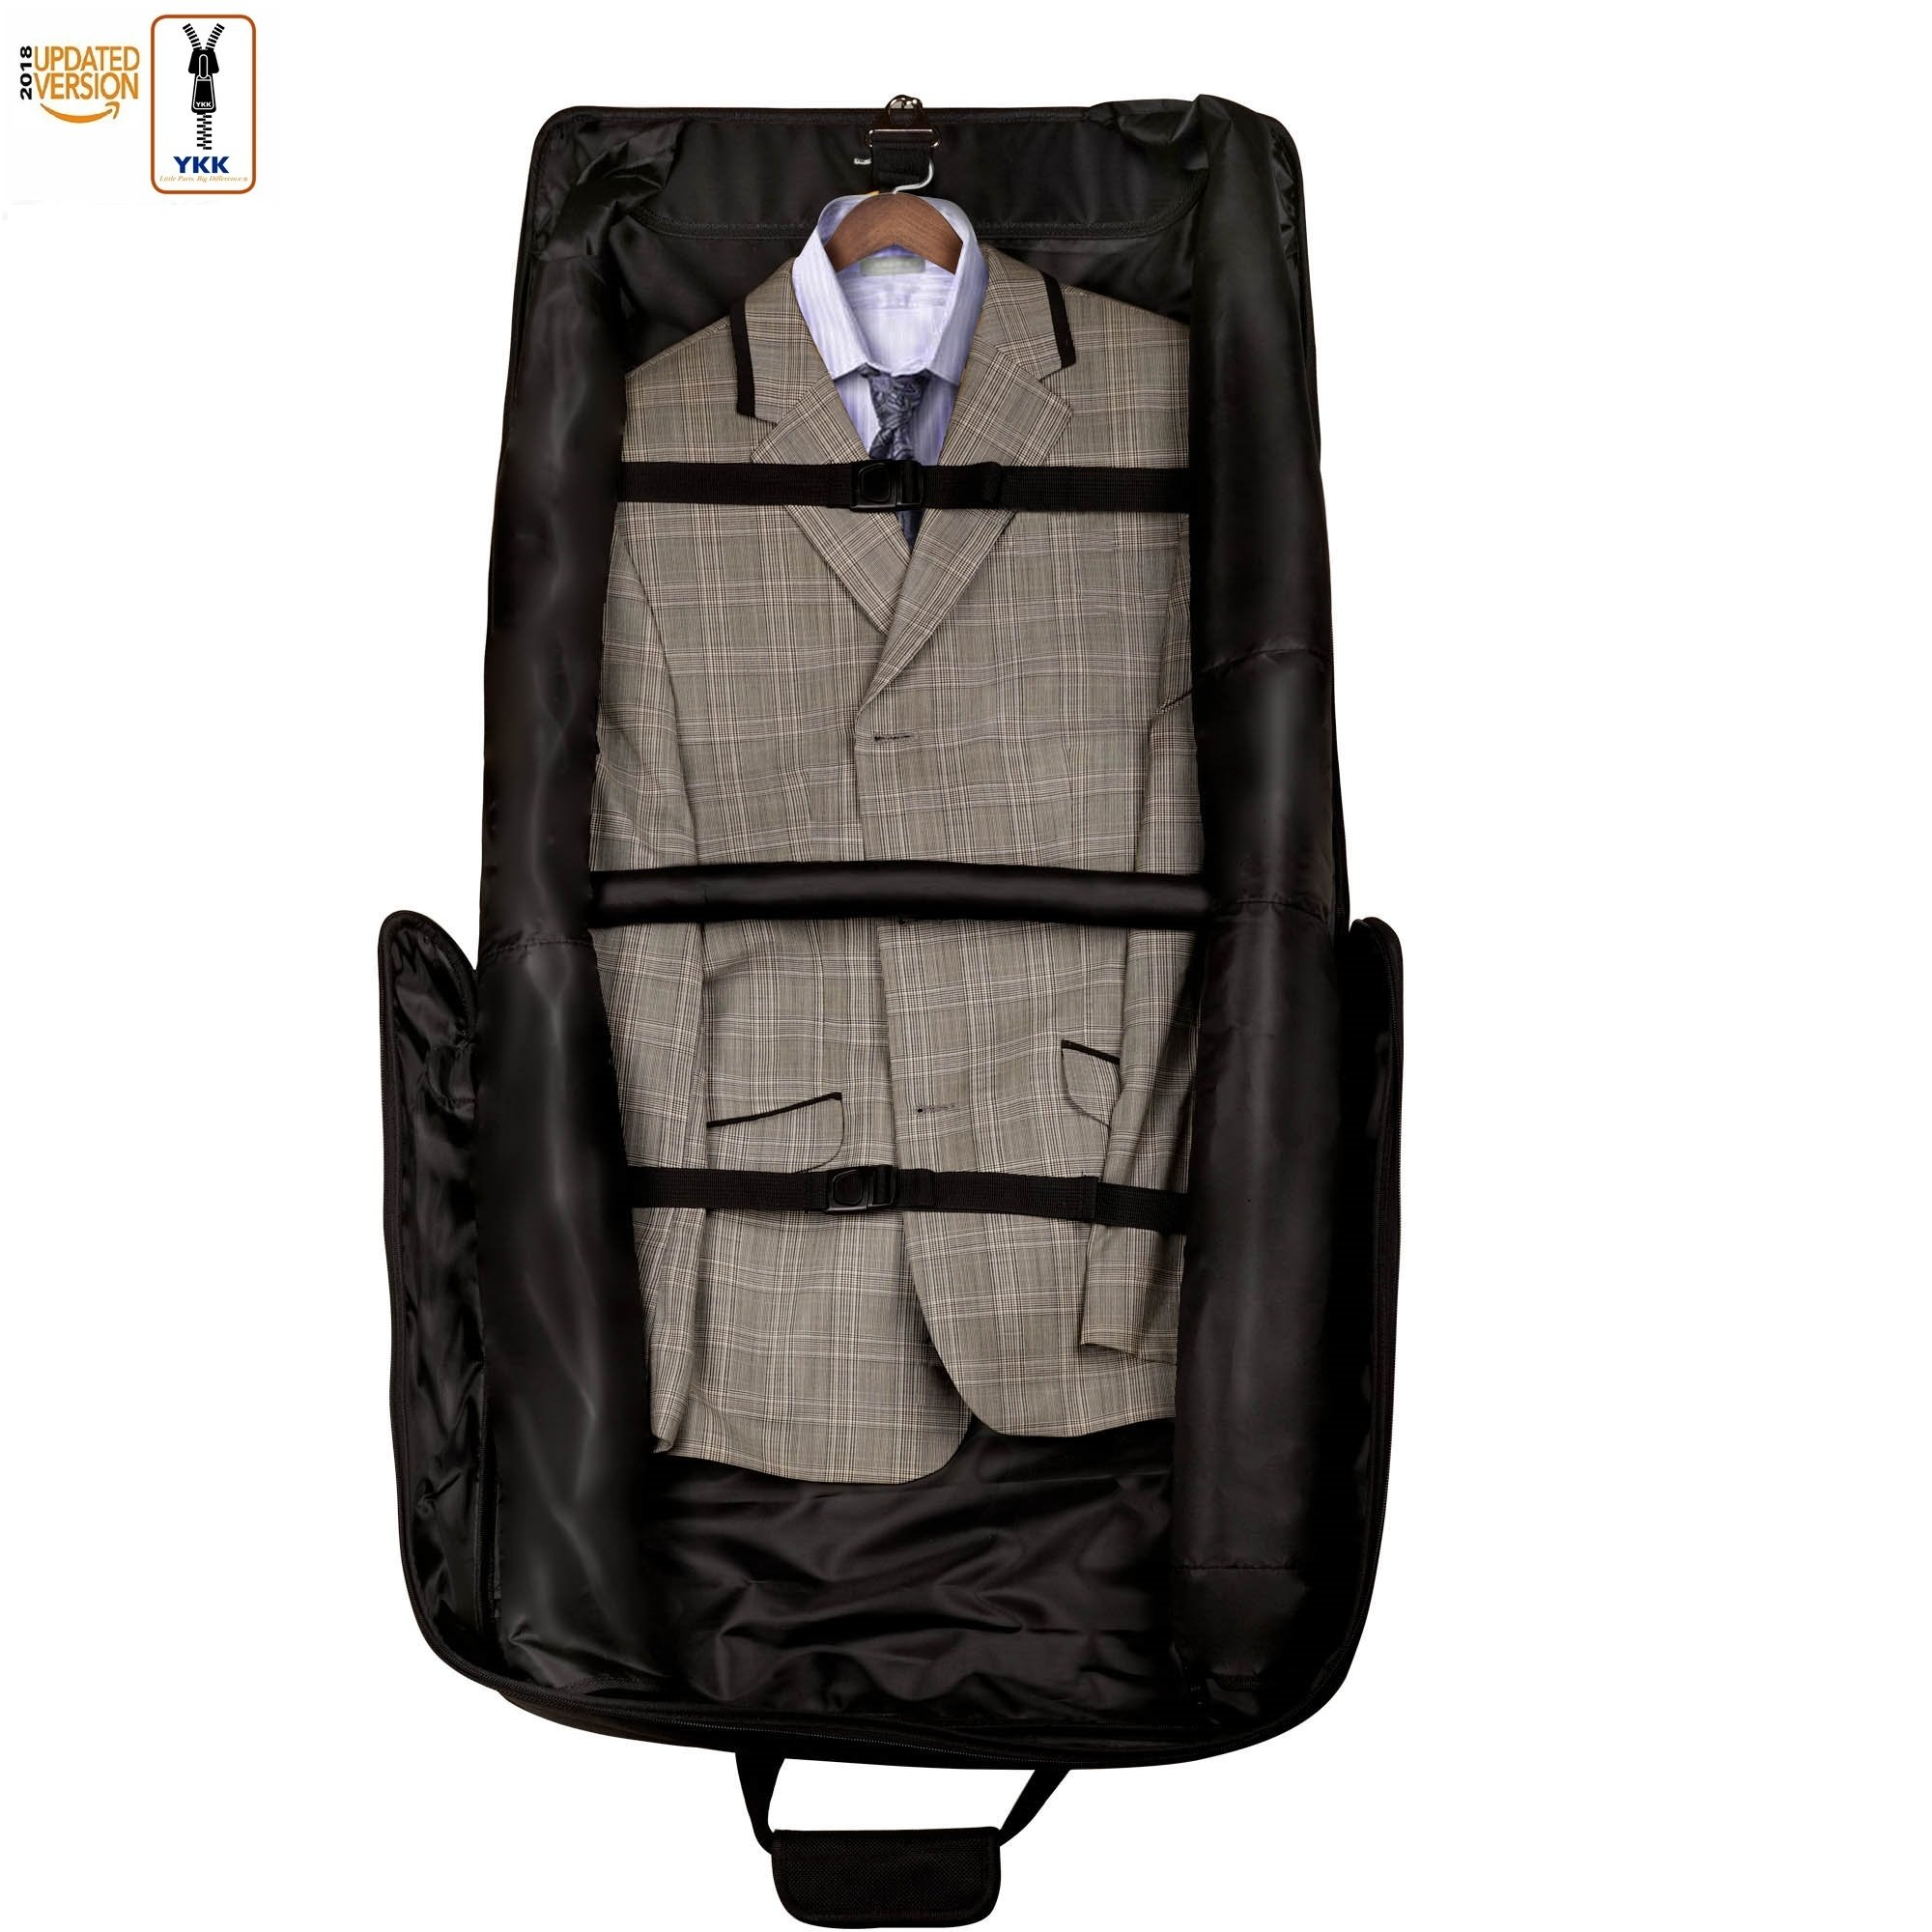 3 Suit Carry On Garment Bag for Travel & Business Trips With Shoulder Strap 40'' Bagazzi Brand by Bagazzi (Image #4)